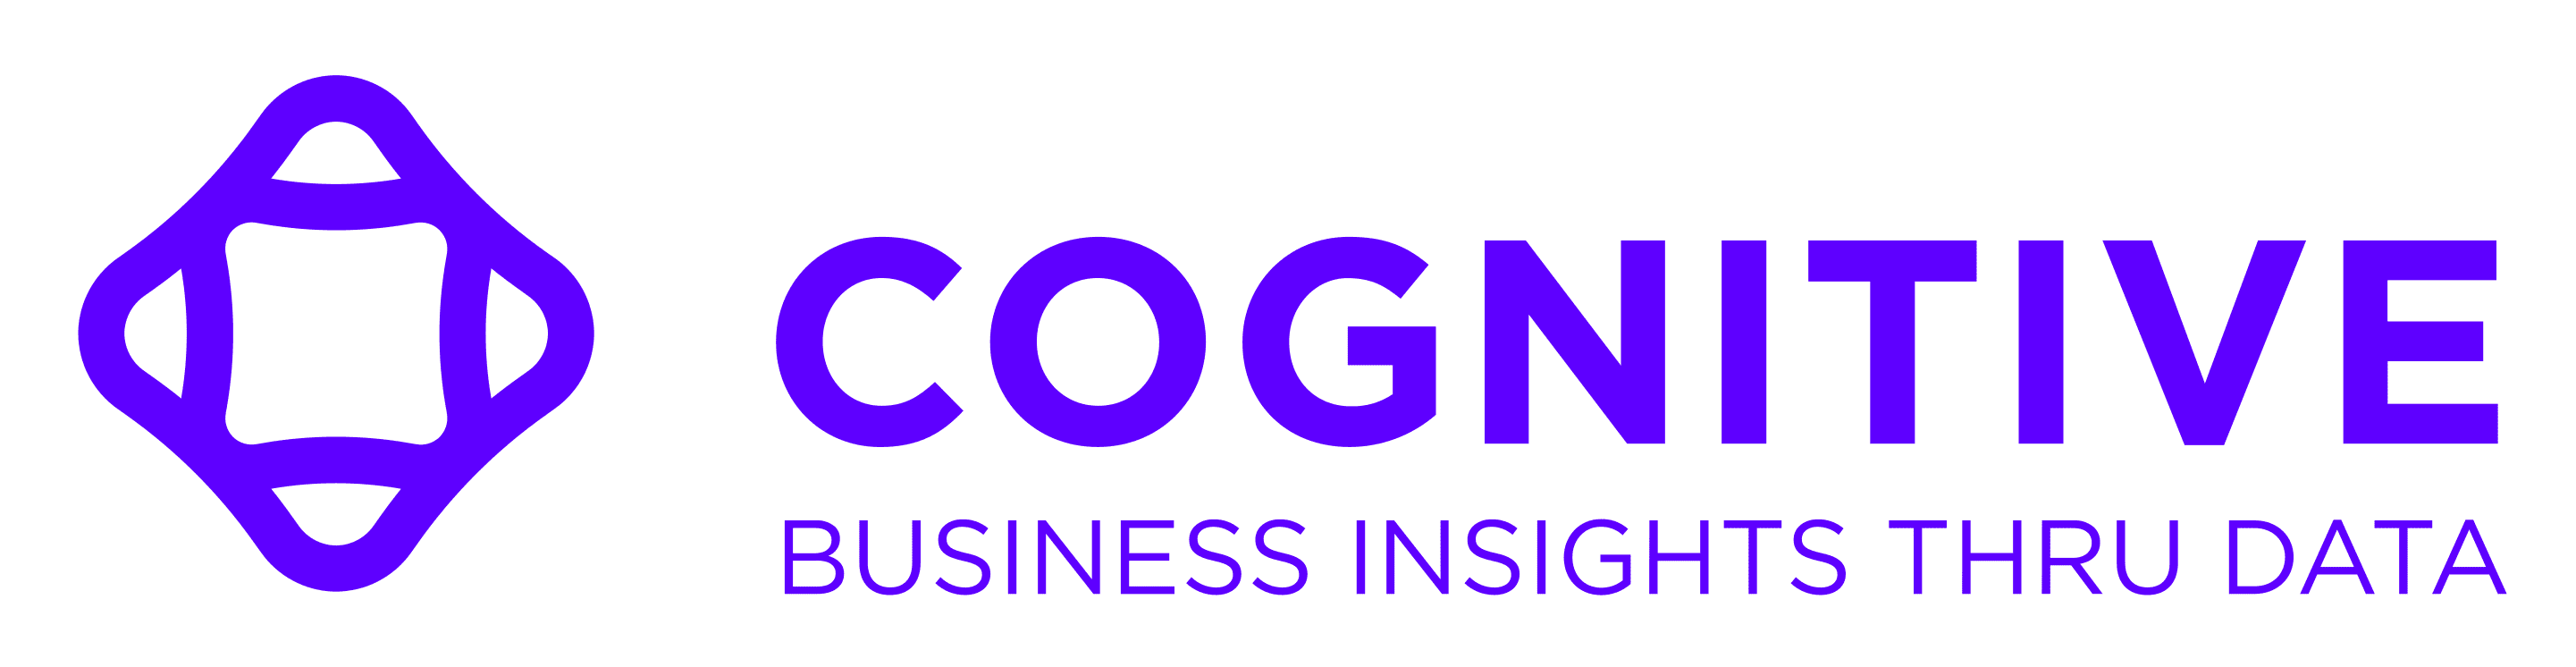 Cognitive - Business Insight Thru Data